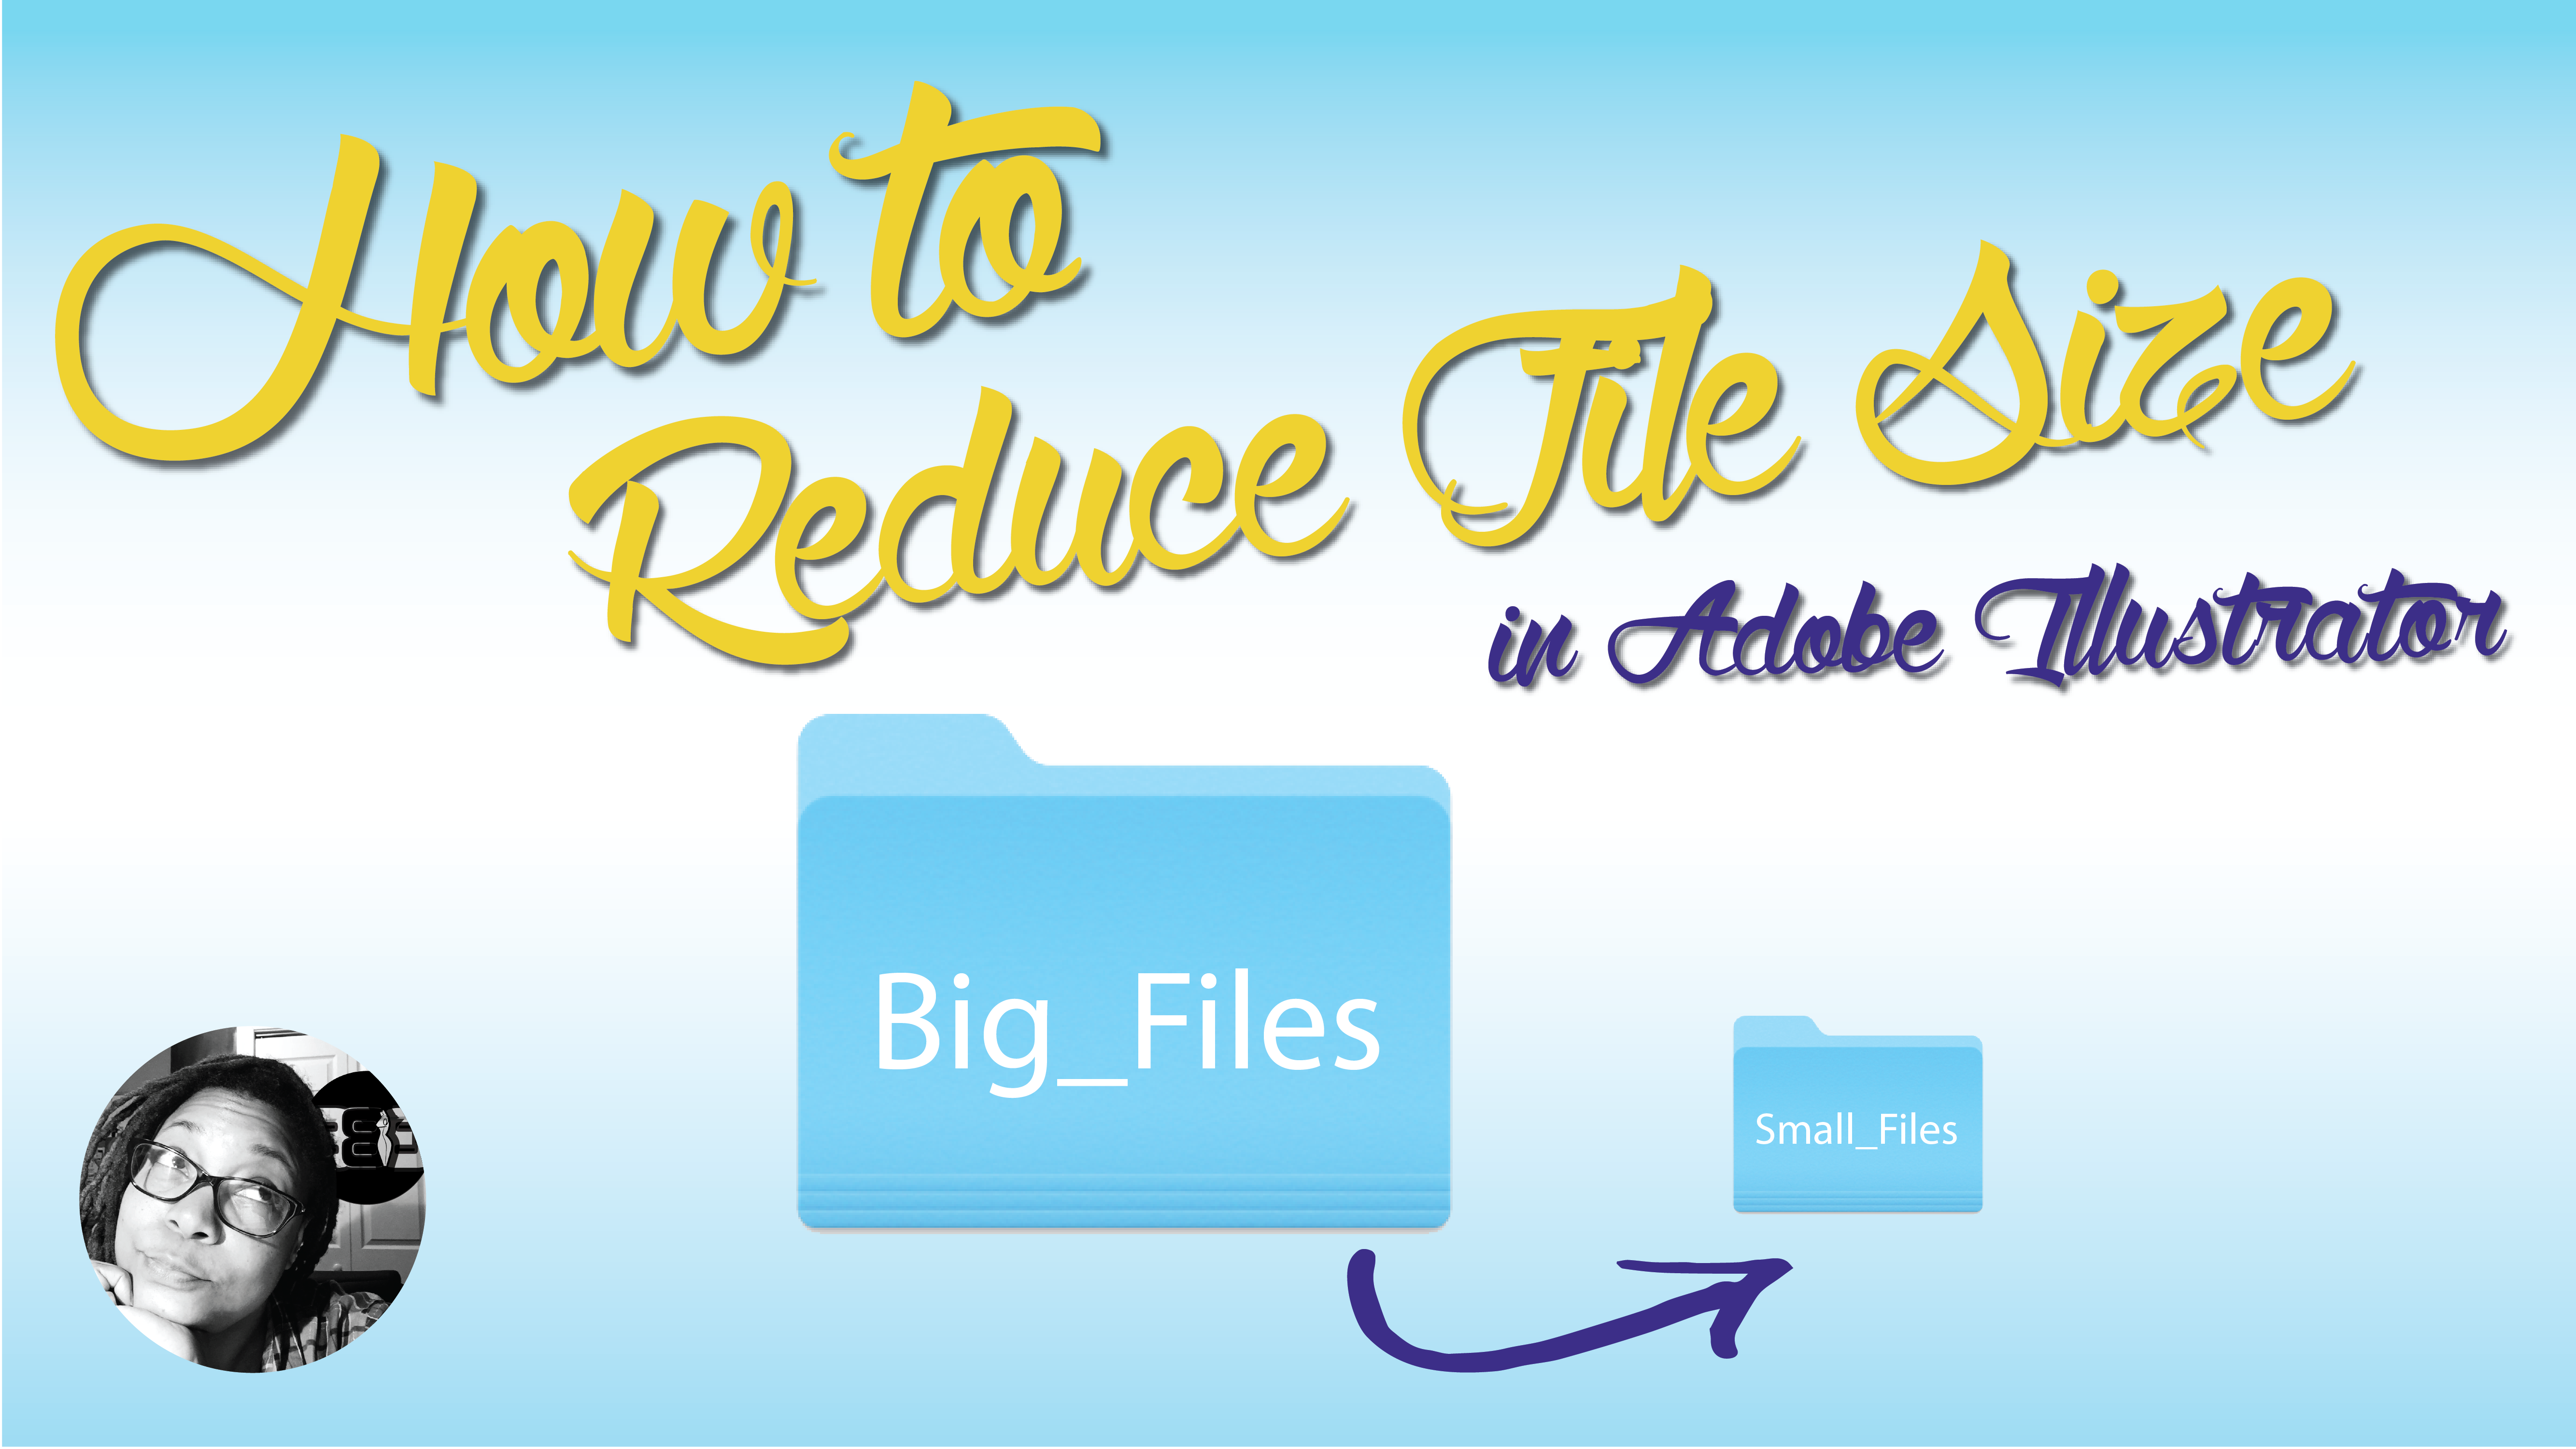 How to Reduce File Size-01